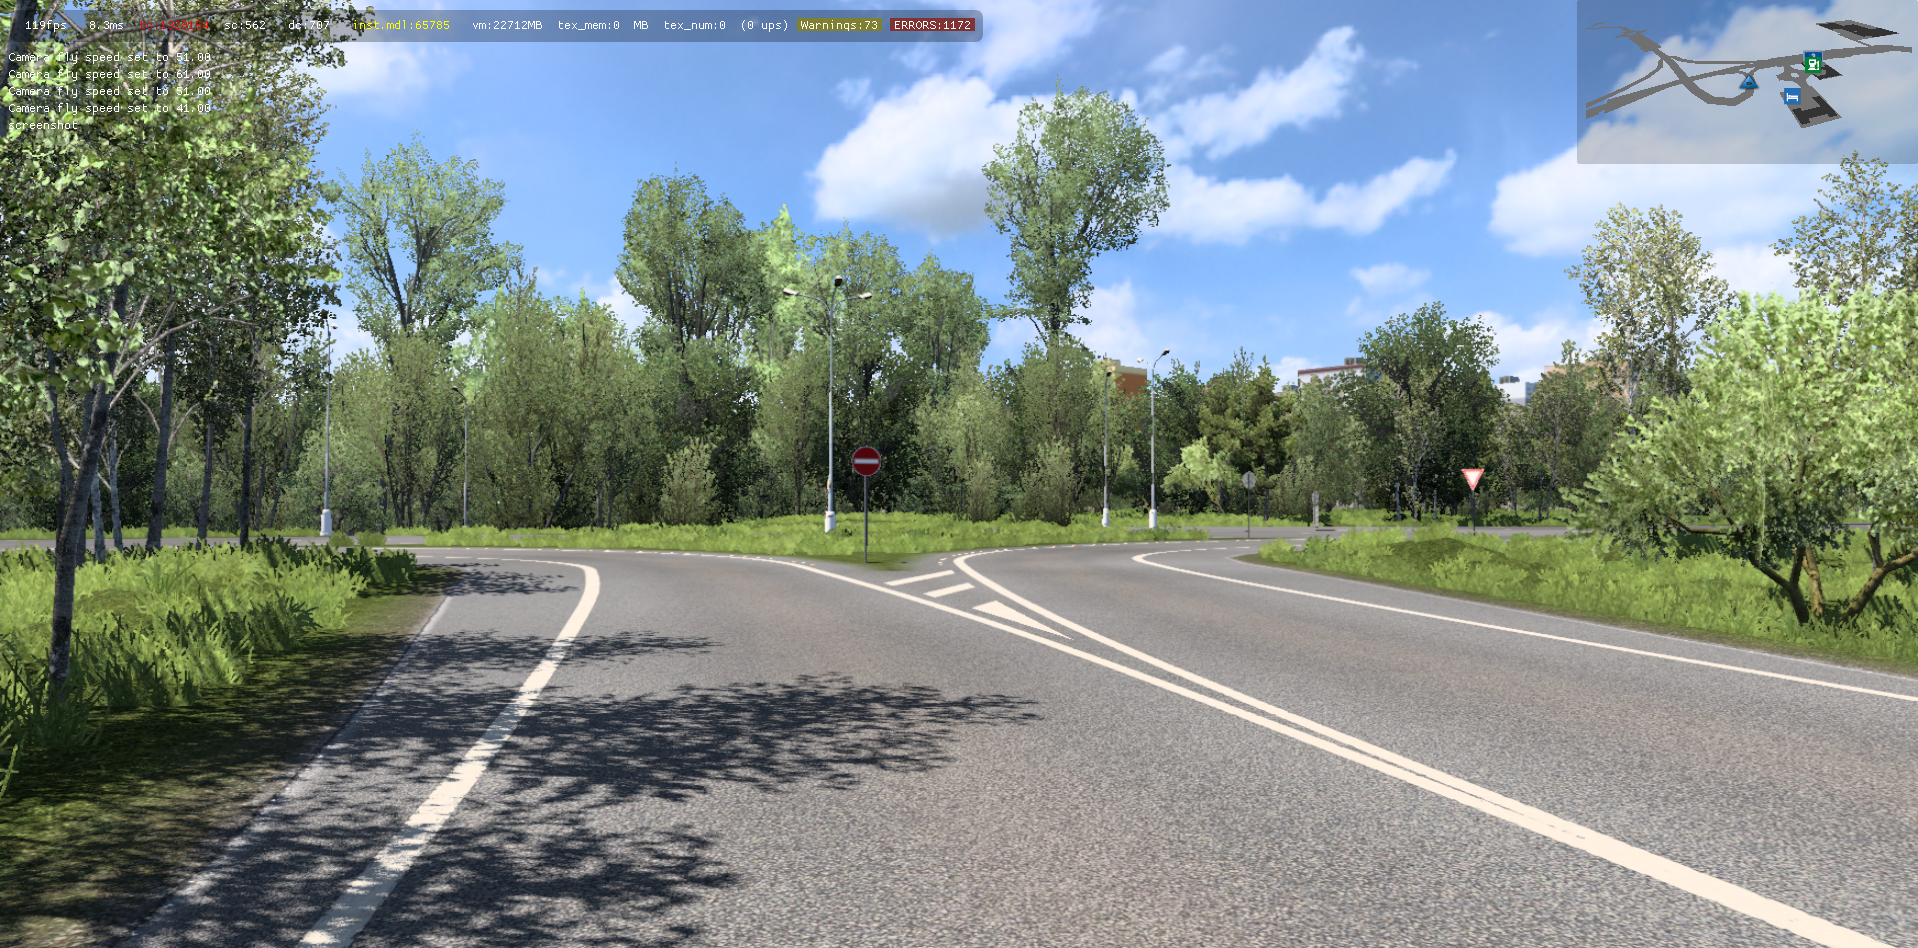 ets2_20210817_225838_00.png